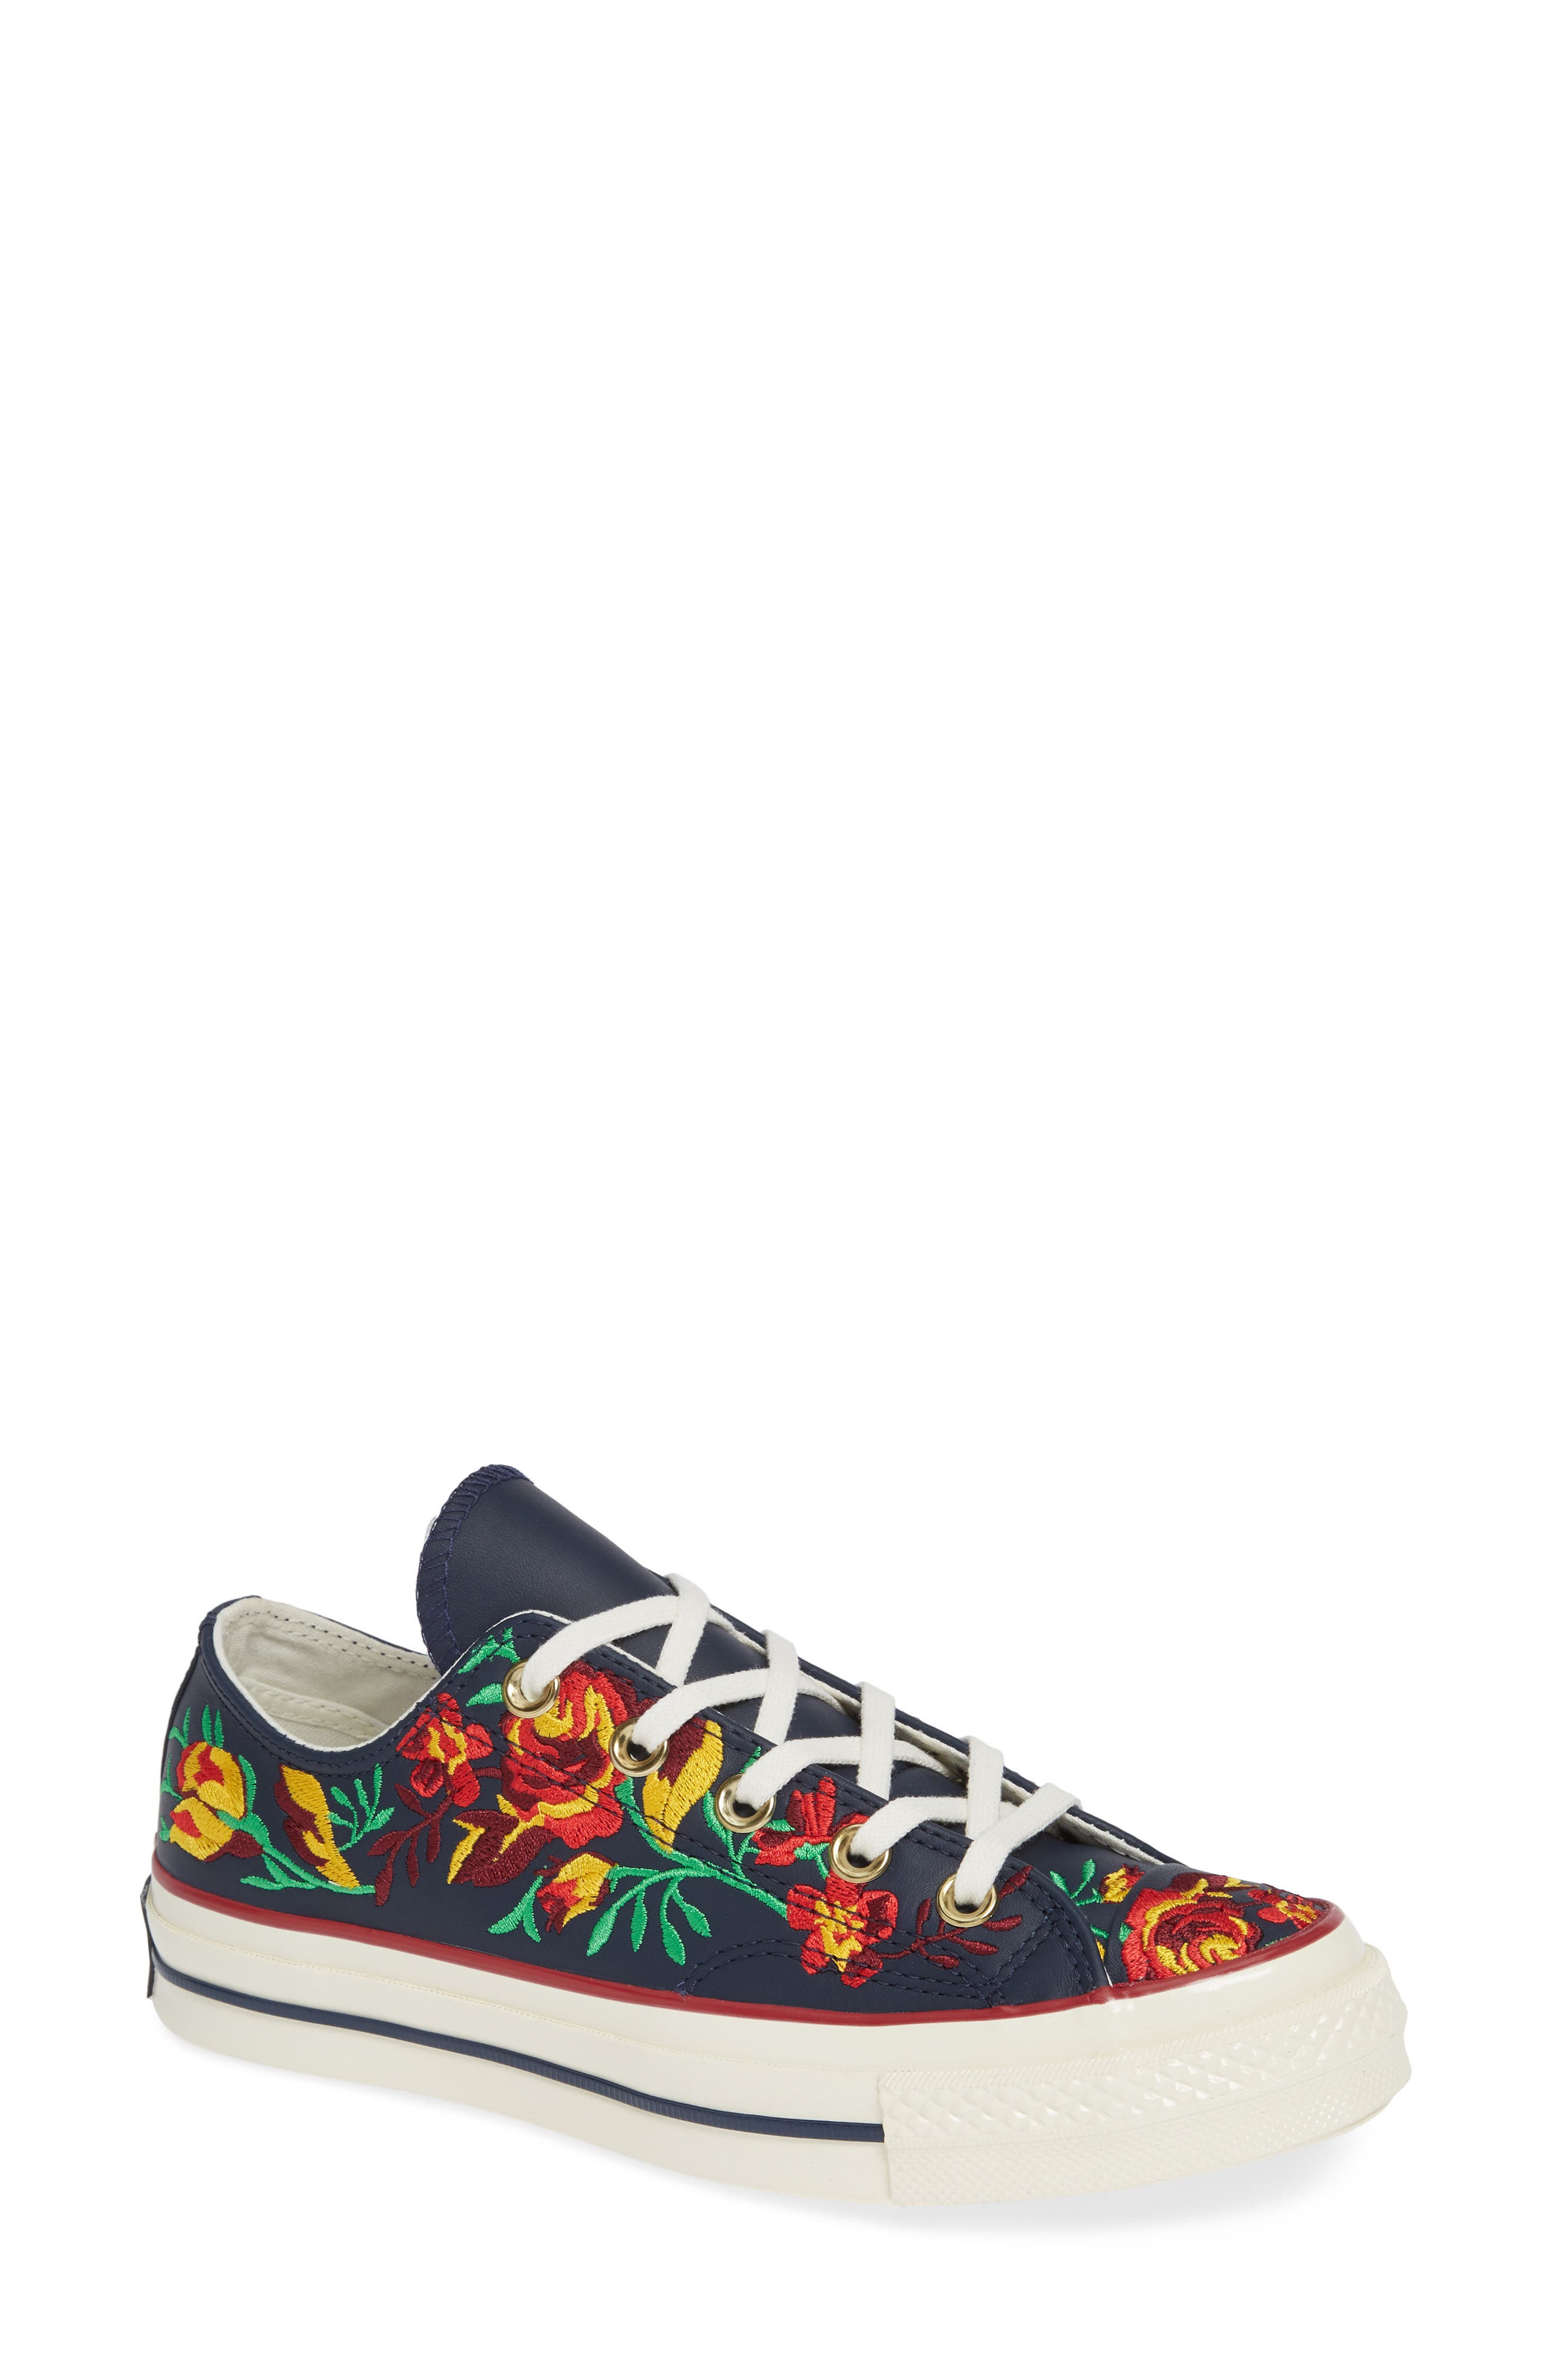 Chuck Taylor<sup>®</sup> All Star<sup>®</sup> Parkway Floral 70 Low Top Sneaker,                         Main,                         color, OBSIDIAN/ CHERRY LEATHER